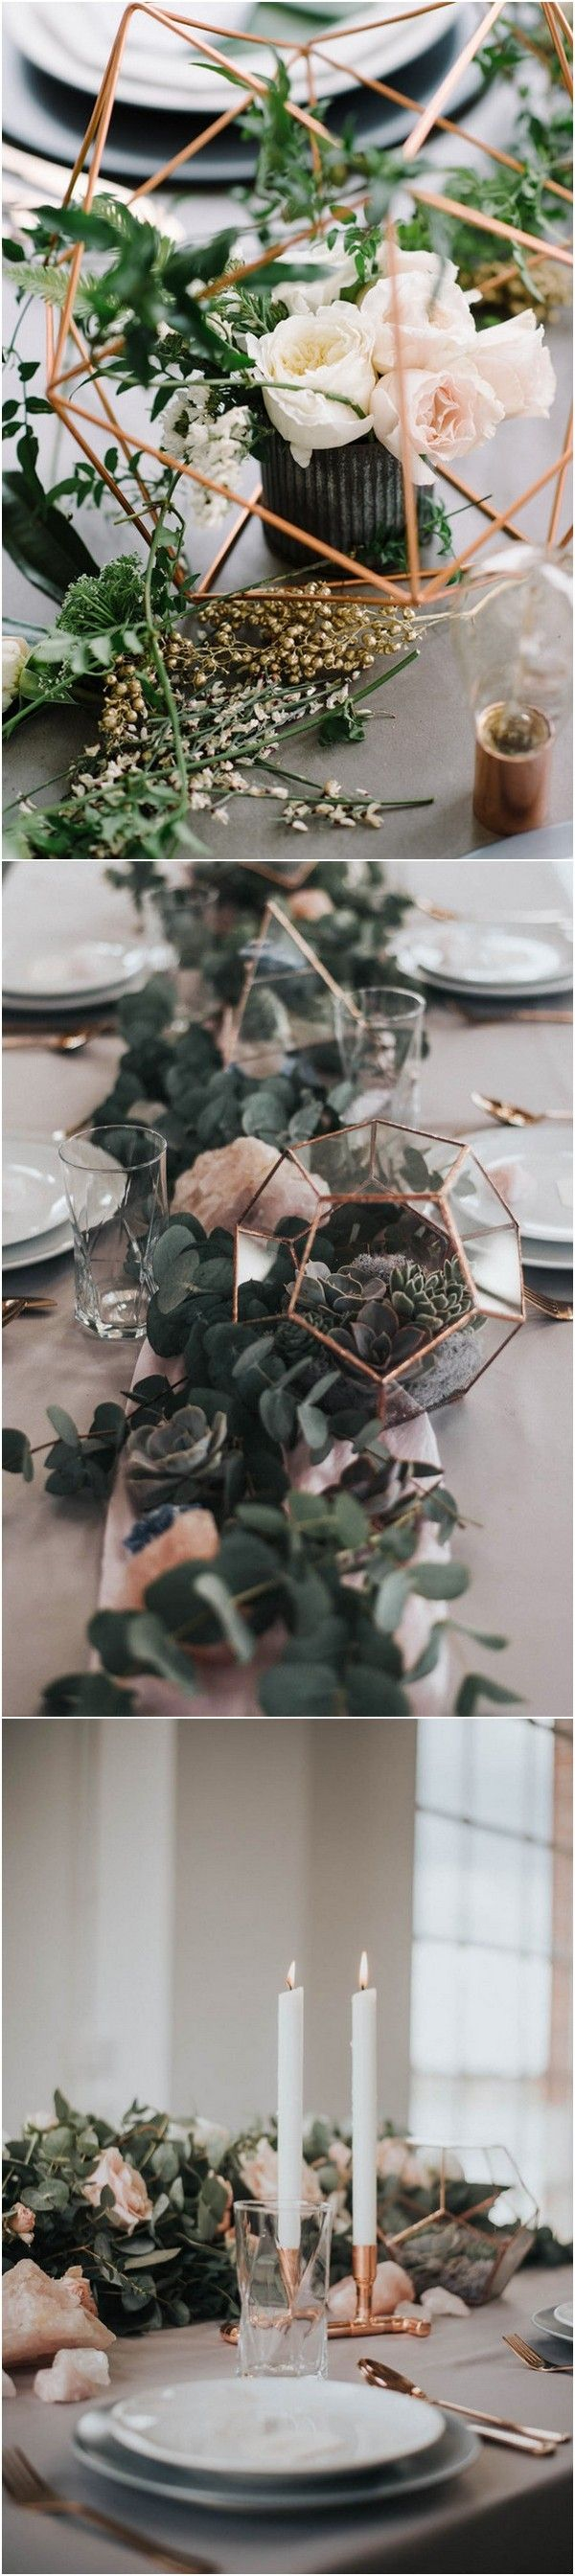 Chic industrial wedding centerpiece ideas